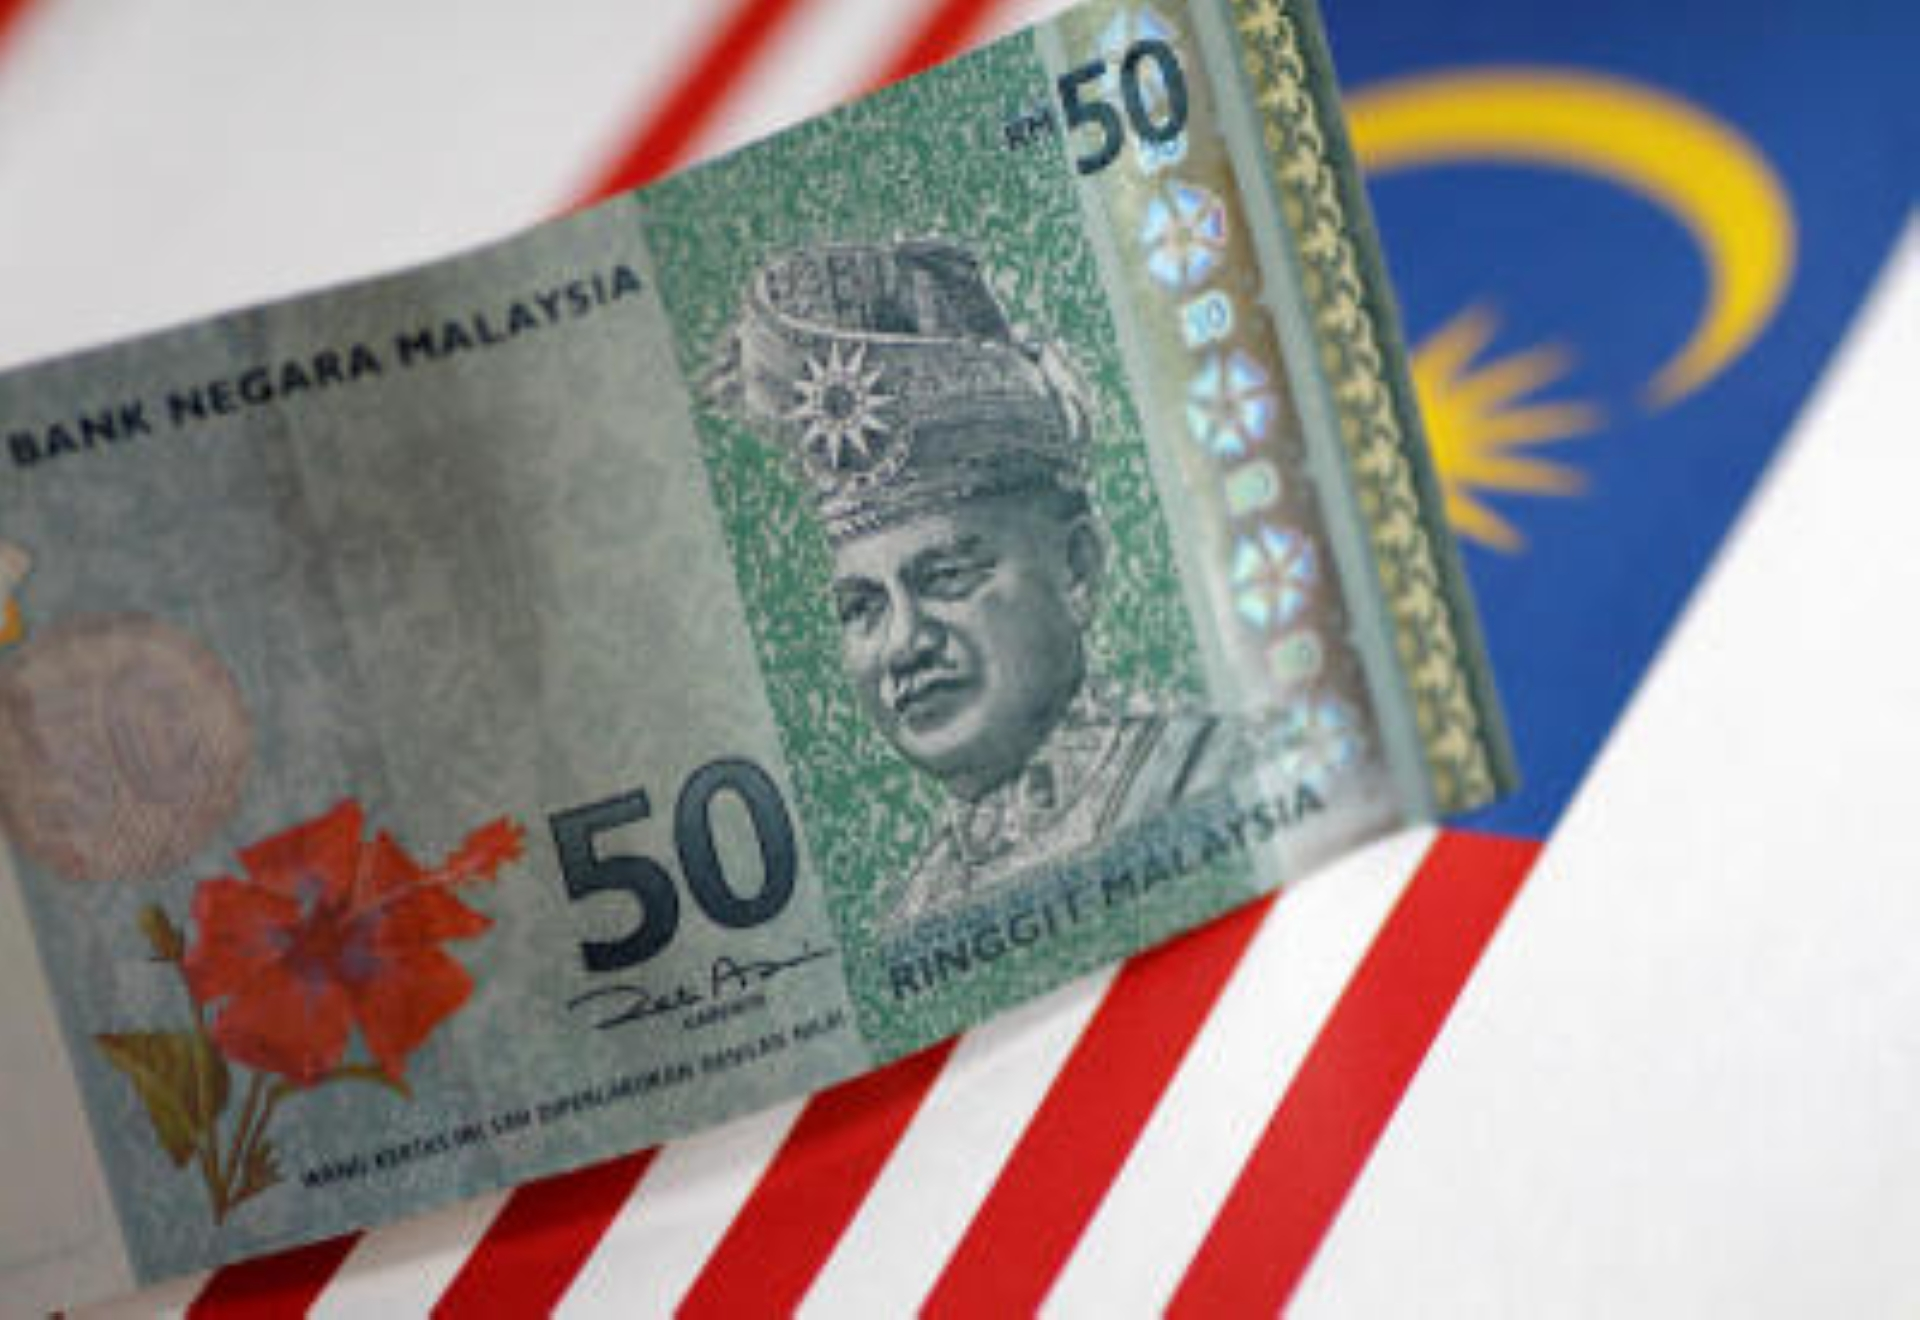 The money manager favours Indonesia's rupiah and Malaysia's ringgit, and is considering adding positions in China's yuan, said Roland Mieth, emerging-markets portfolio manager at the company in Singapore.